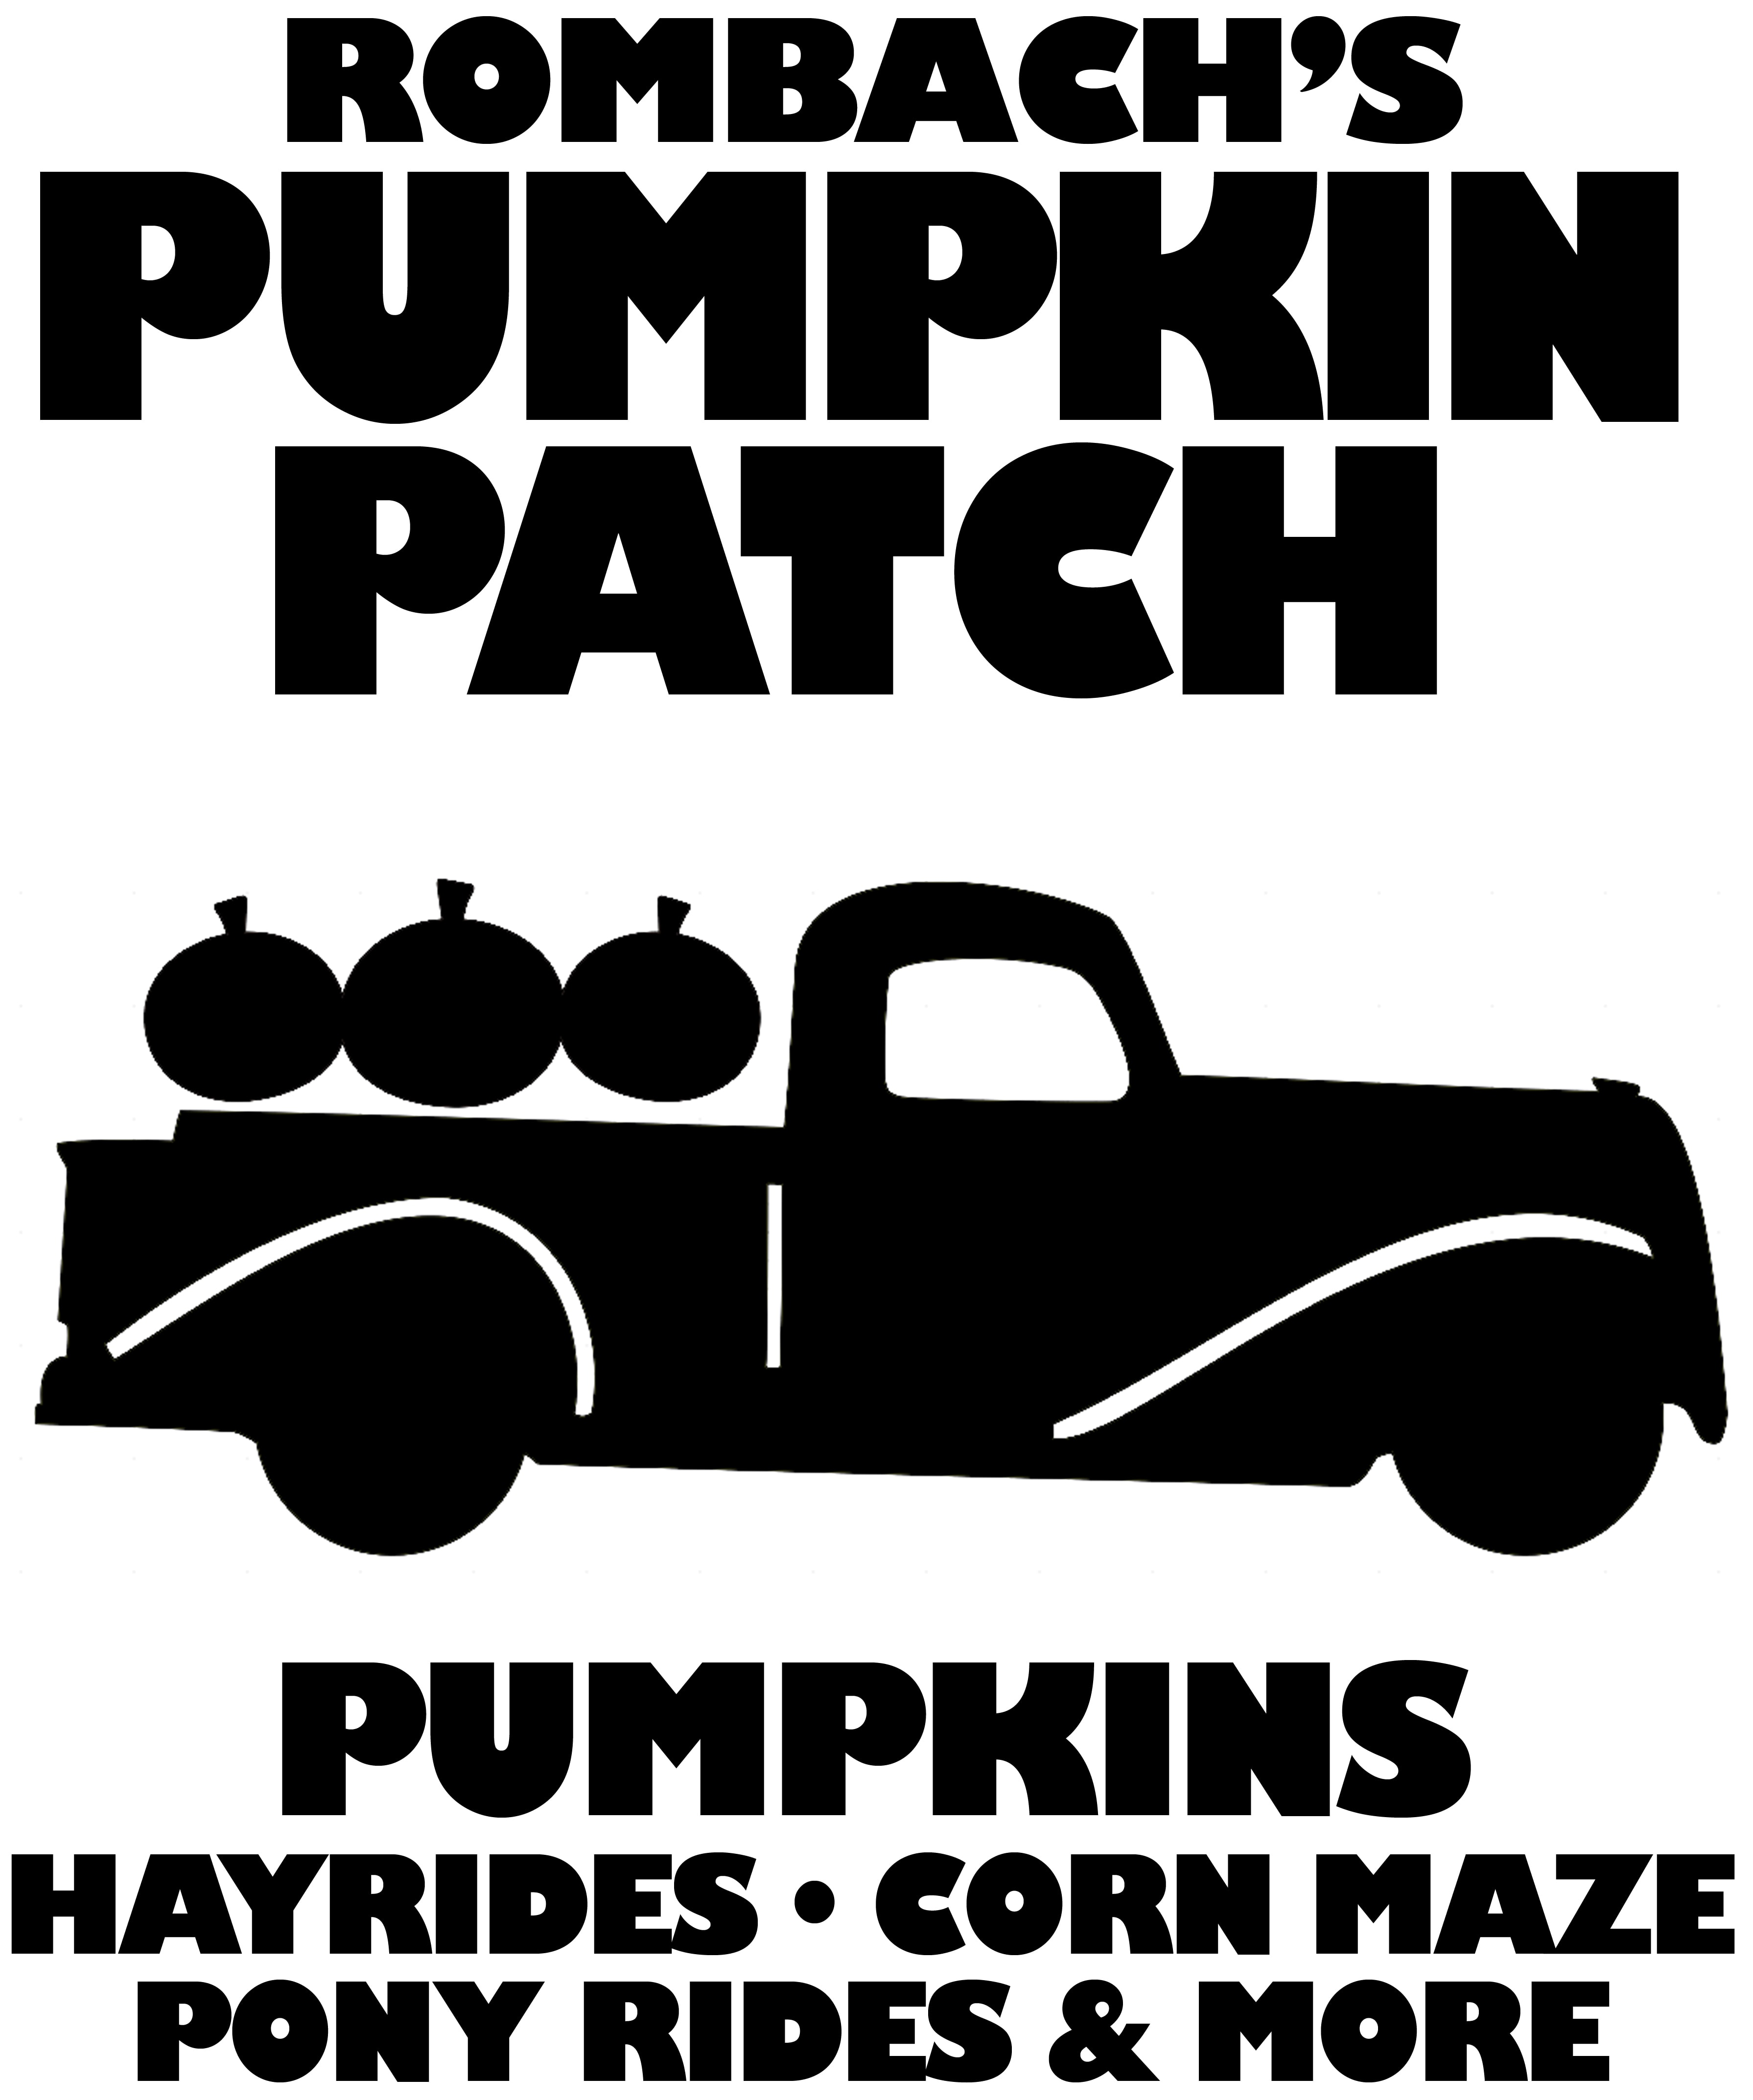 Pumpkin patch sign.